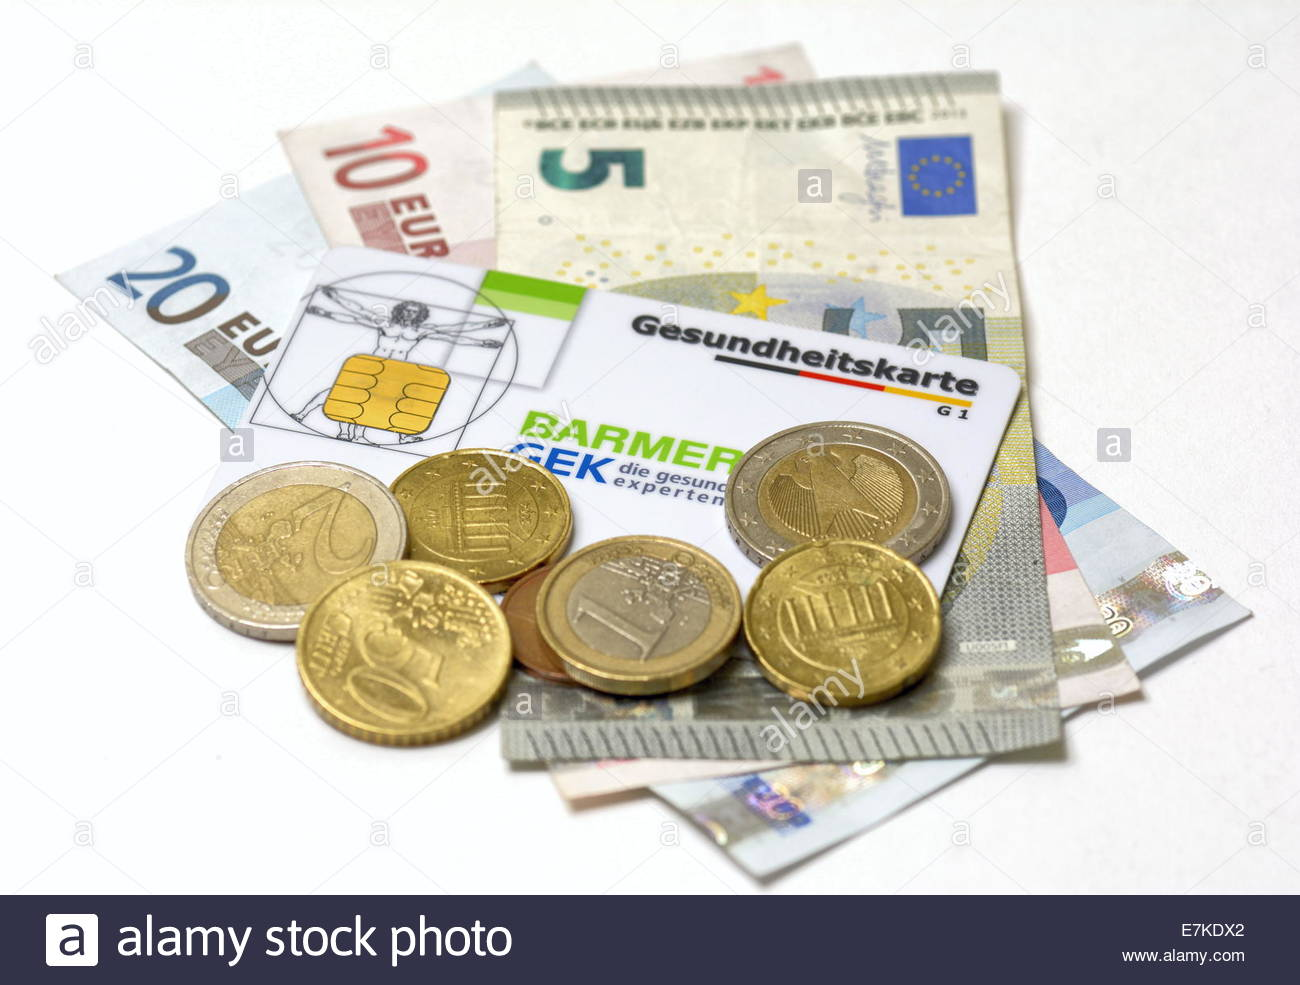 Euro and Health care card - Stock Image